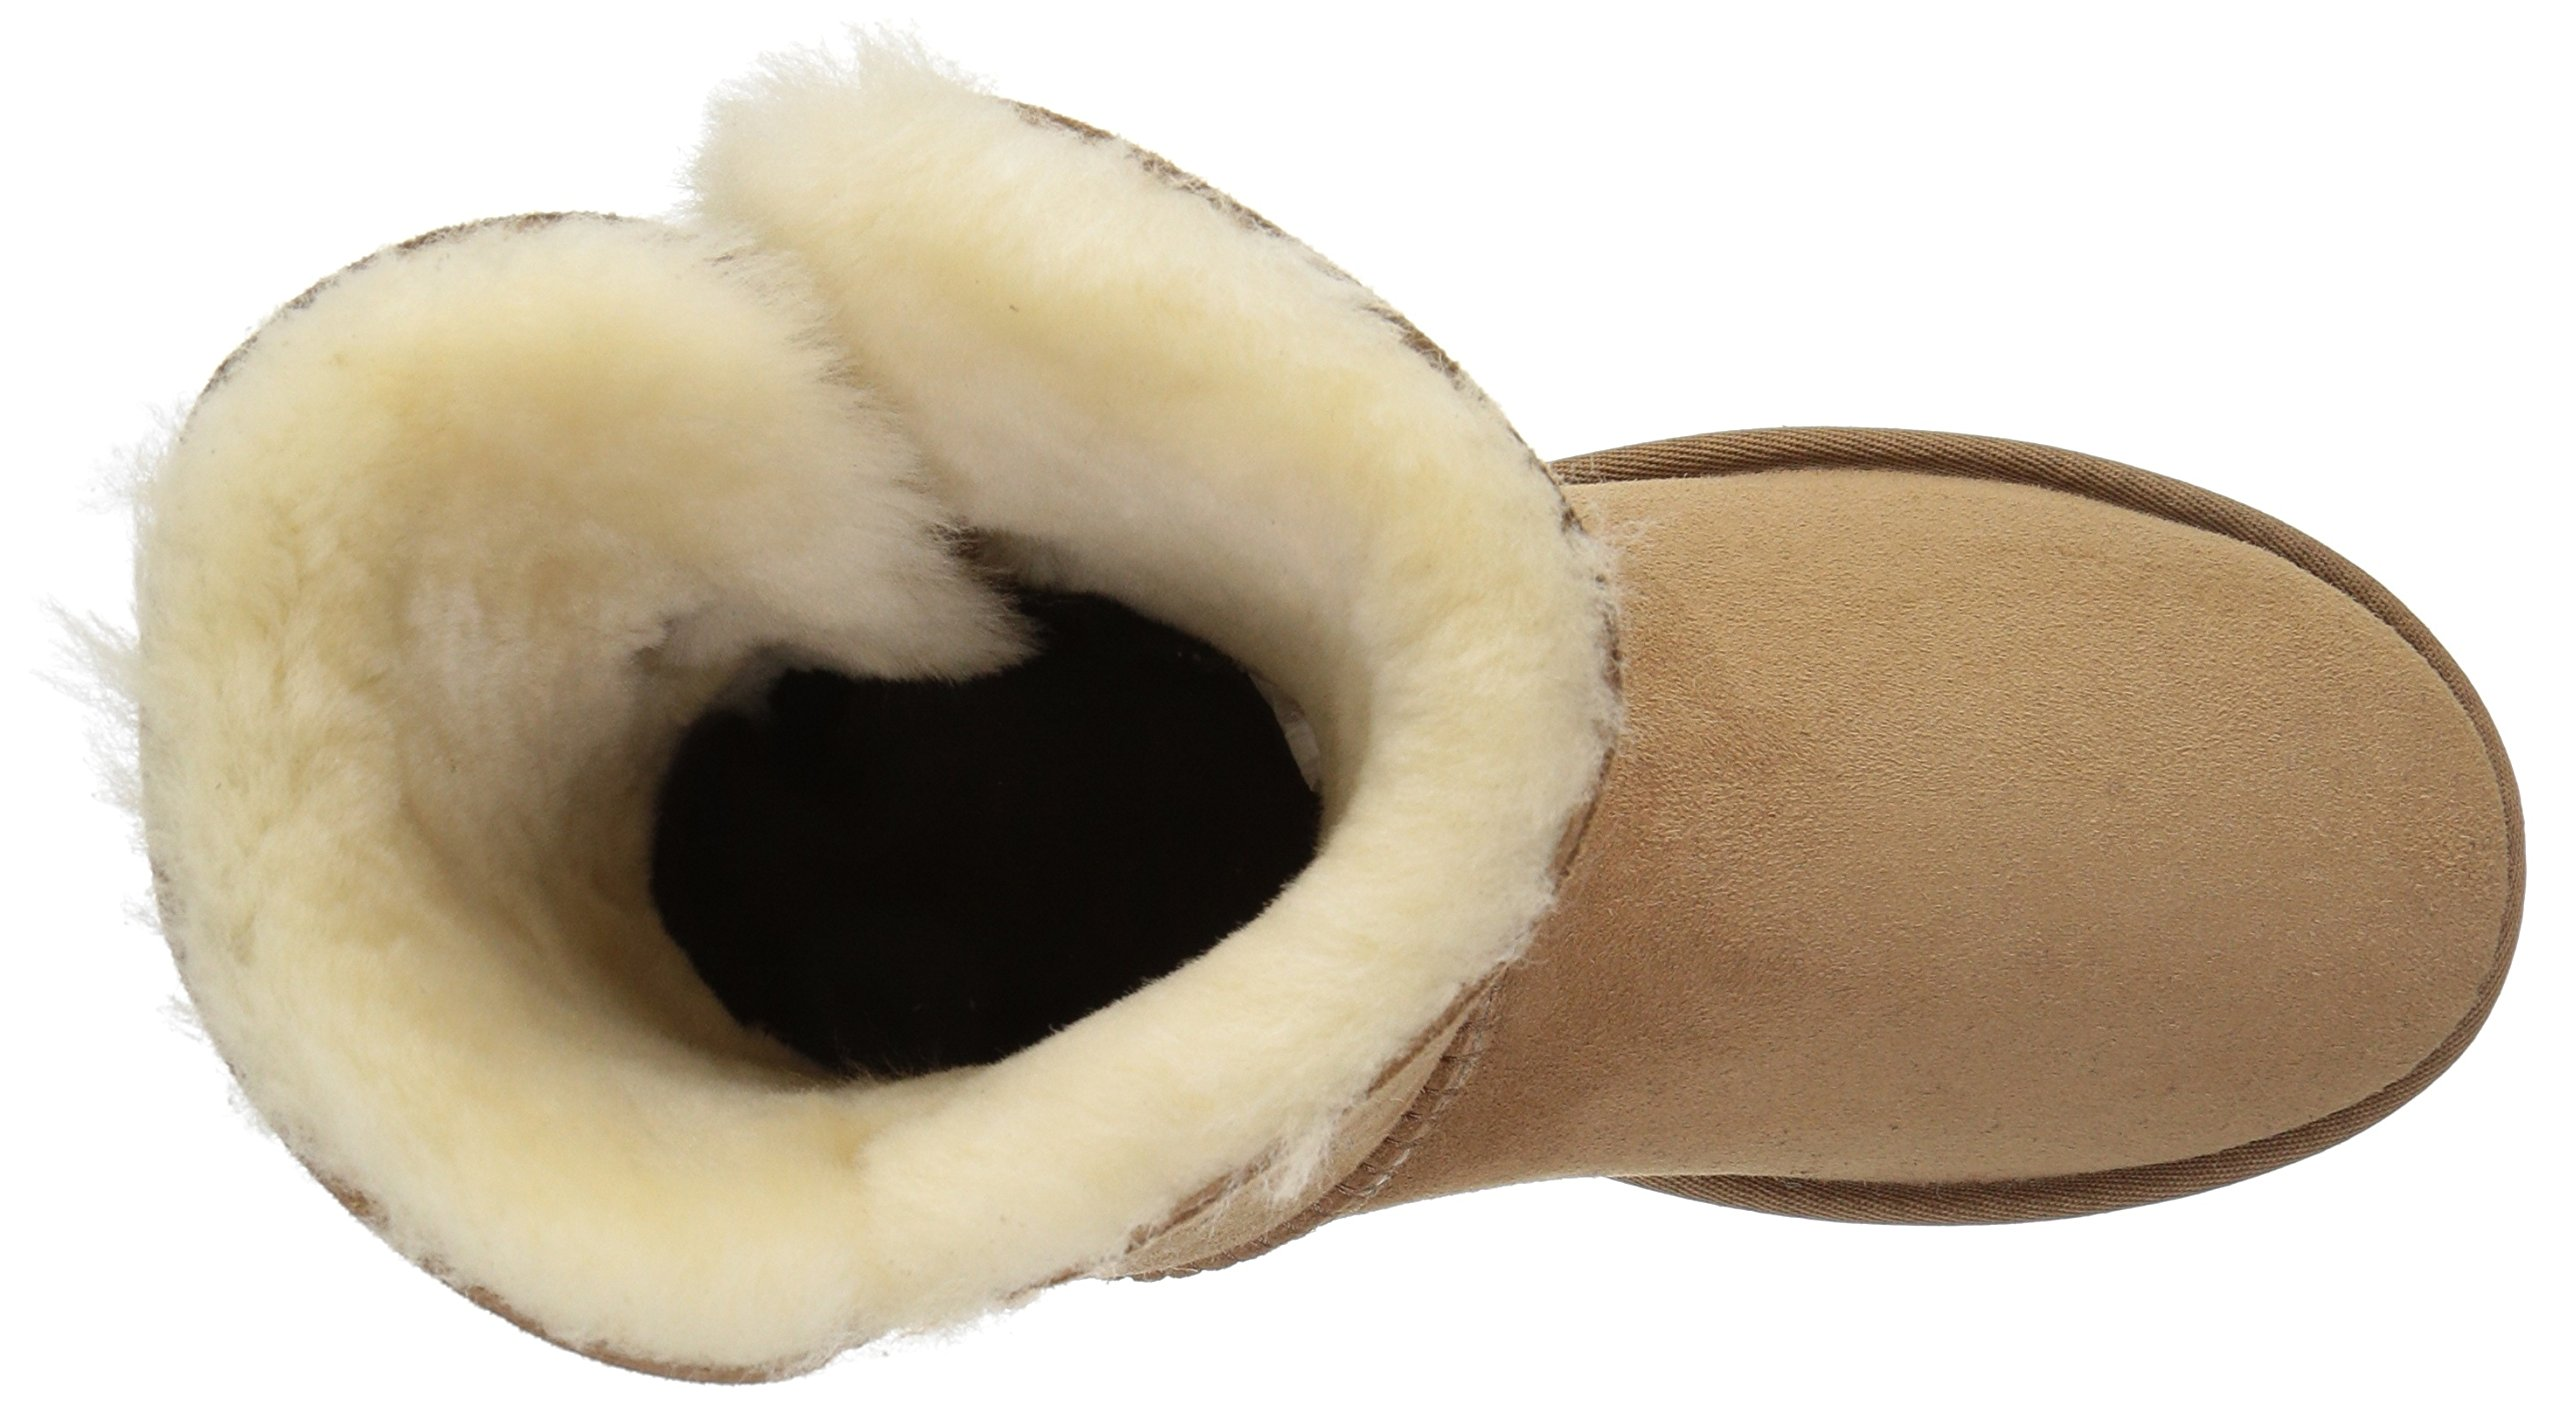 UGG Women's Bailey Button II Winter Boot, Chestnut, 8 B US by UGG (Image #8)